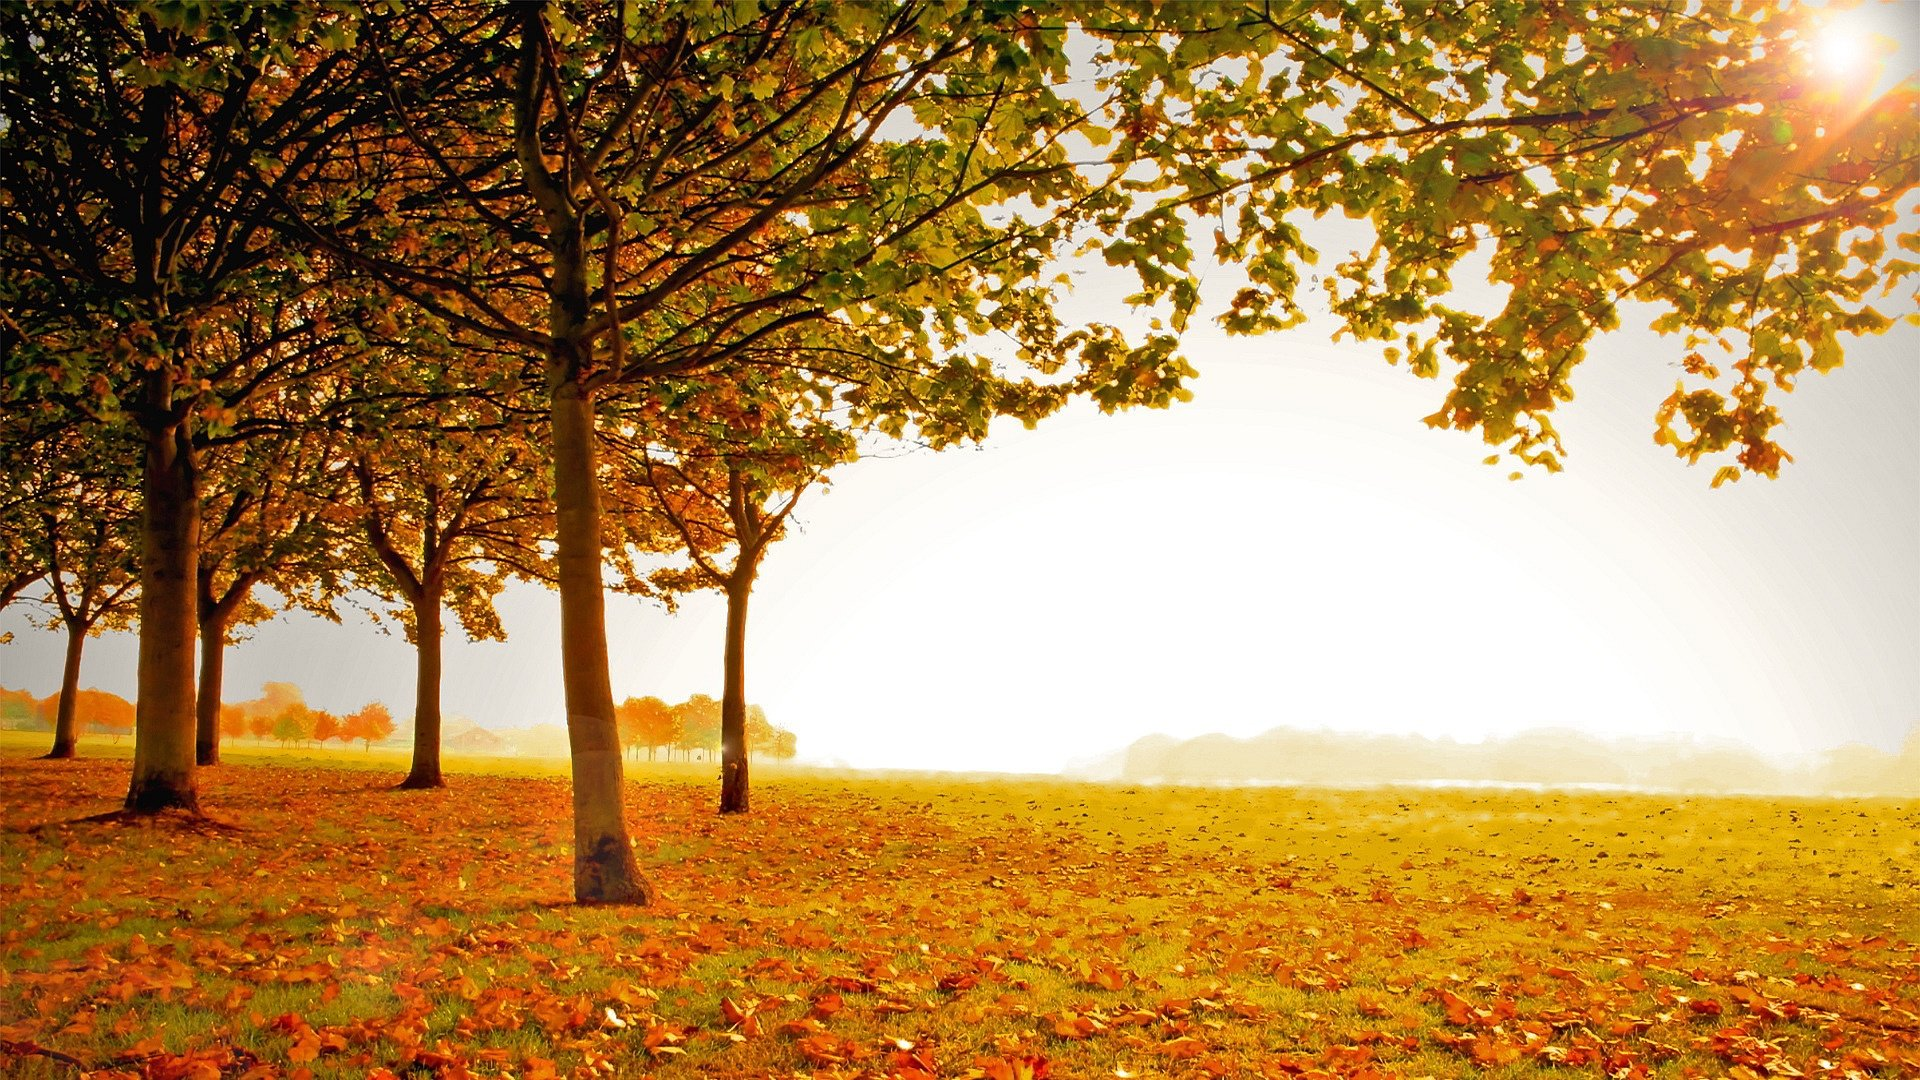 Lovely fall scenery backgrounds free download - Hd photos of scenery ...